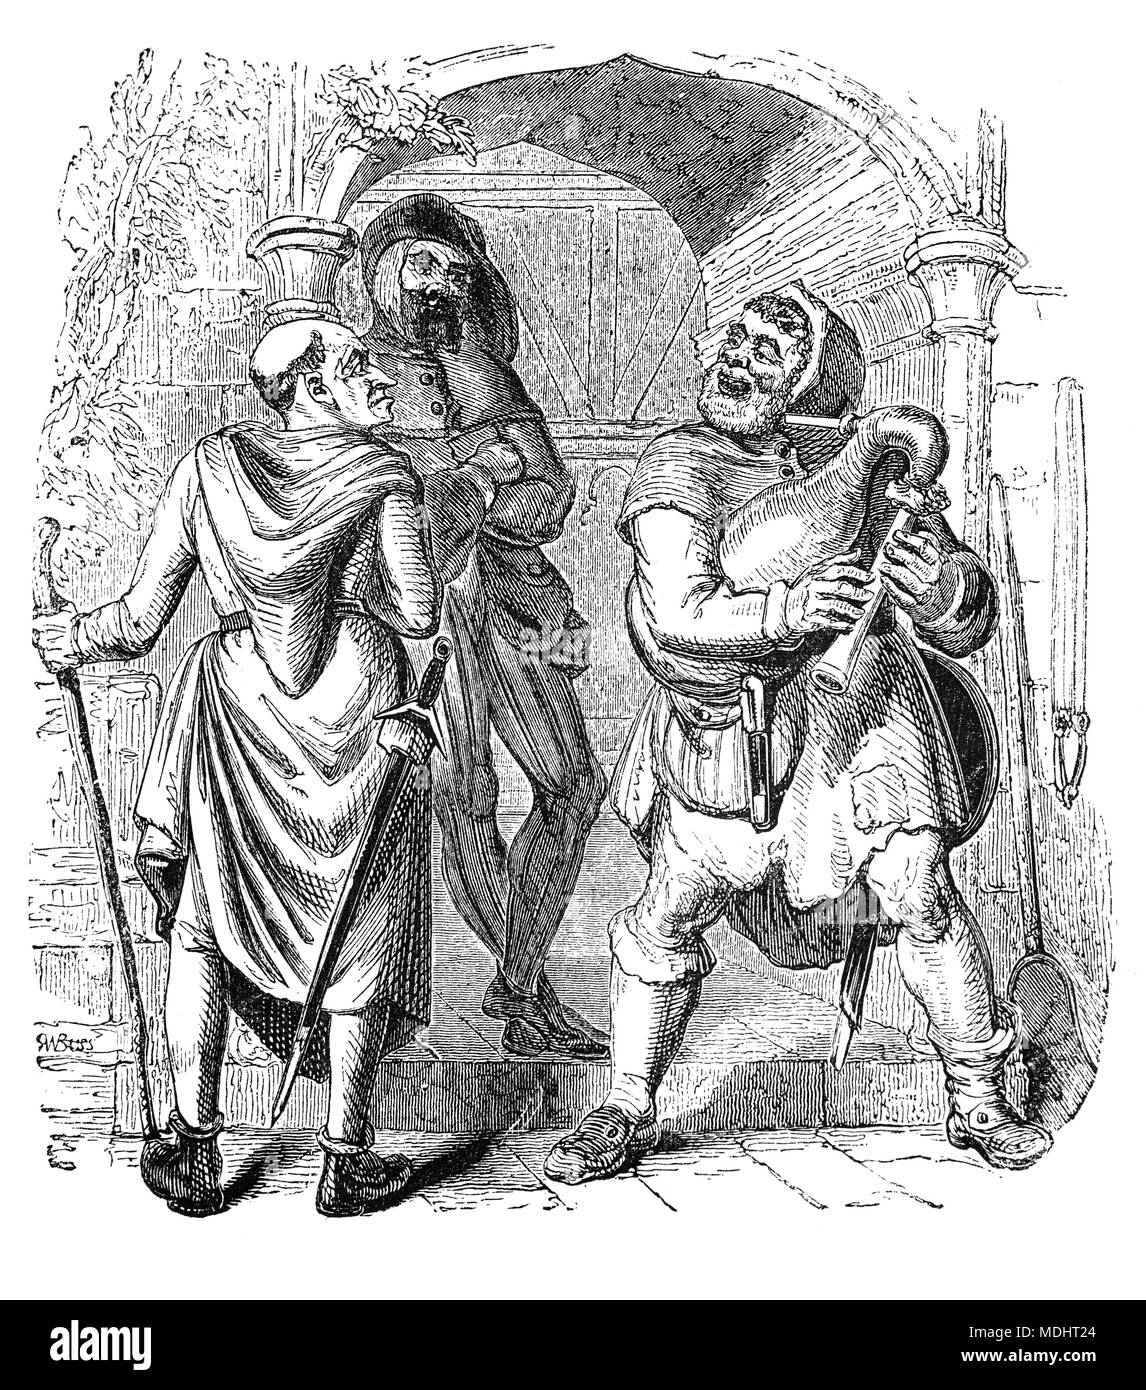 Two of the characters from The Canterbury Tales, a collection of 24 stories written  by Geoffrey Chaucer between 1387 and 1400 when he became Controller of Customs and Justice of Peace.  The tales (mostly written in verse, although some are in prose) are presented as part of a story-telling contest by a group of pilgrims as they travel together on a journey from London to Canterbury to visit the shrine of Saint Thomas Becket at Canterbury Cathedral. The illustration shows the Miller, Manciple and Reve. - Stock Image